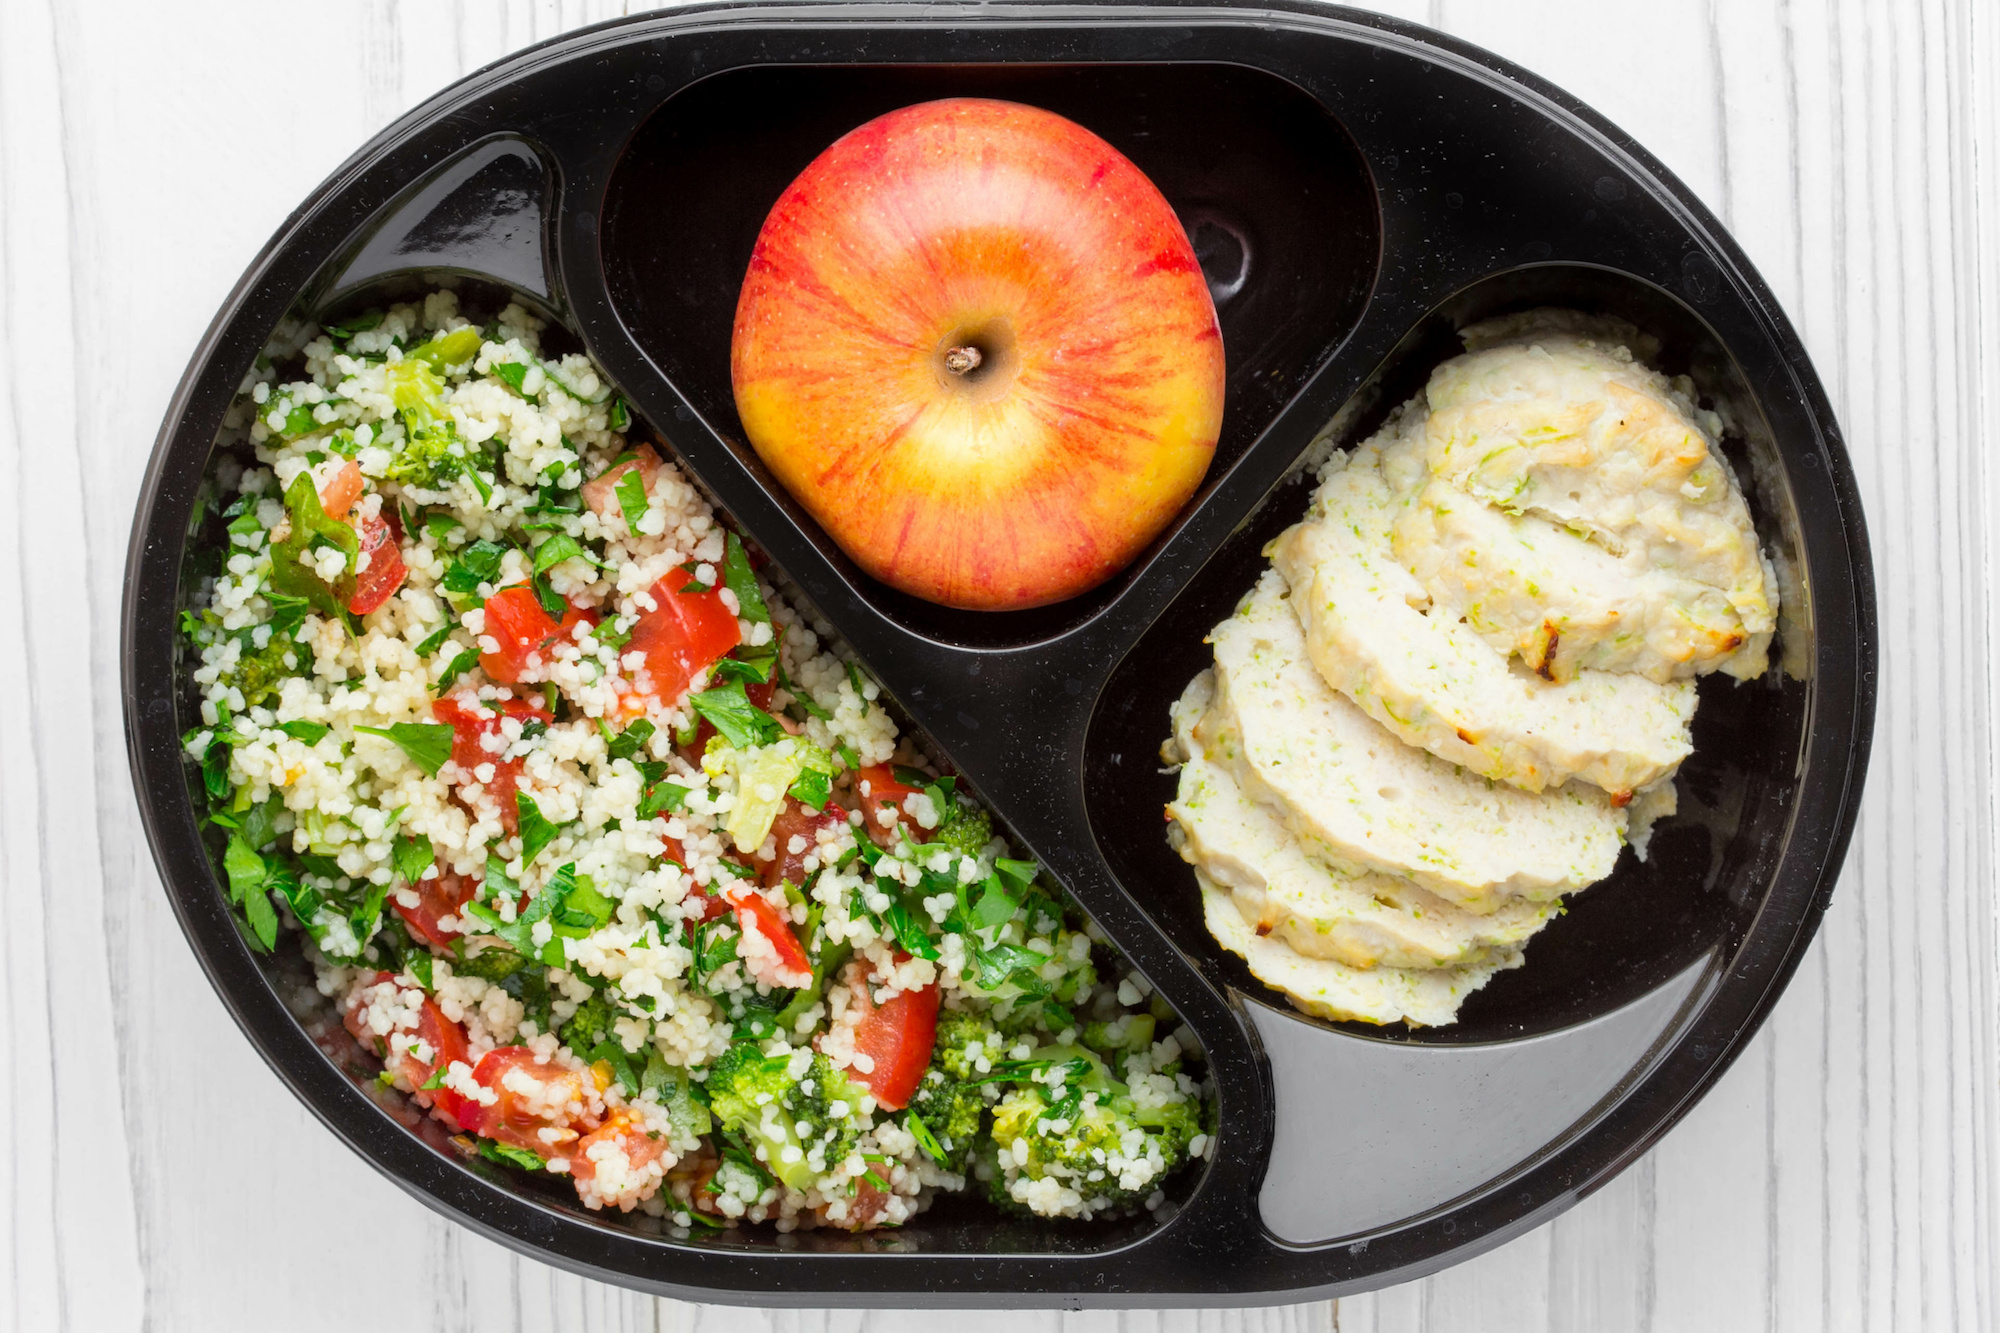 Minty vegetable couscous with herby seitan lunchbox